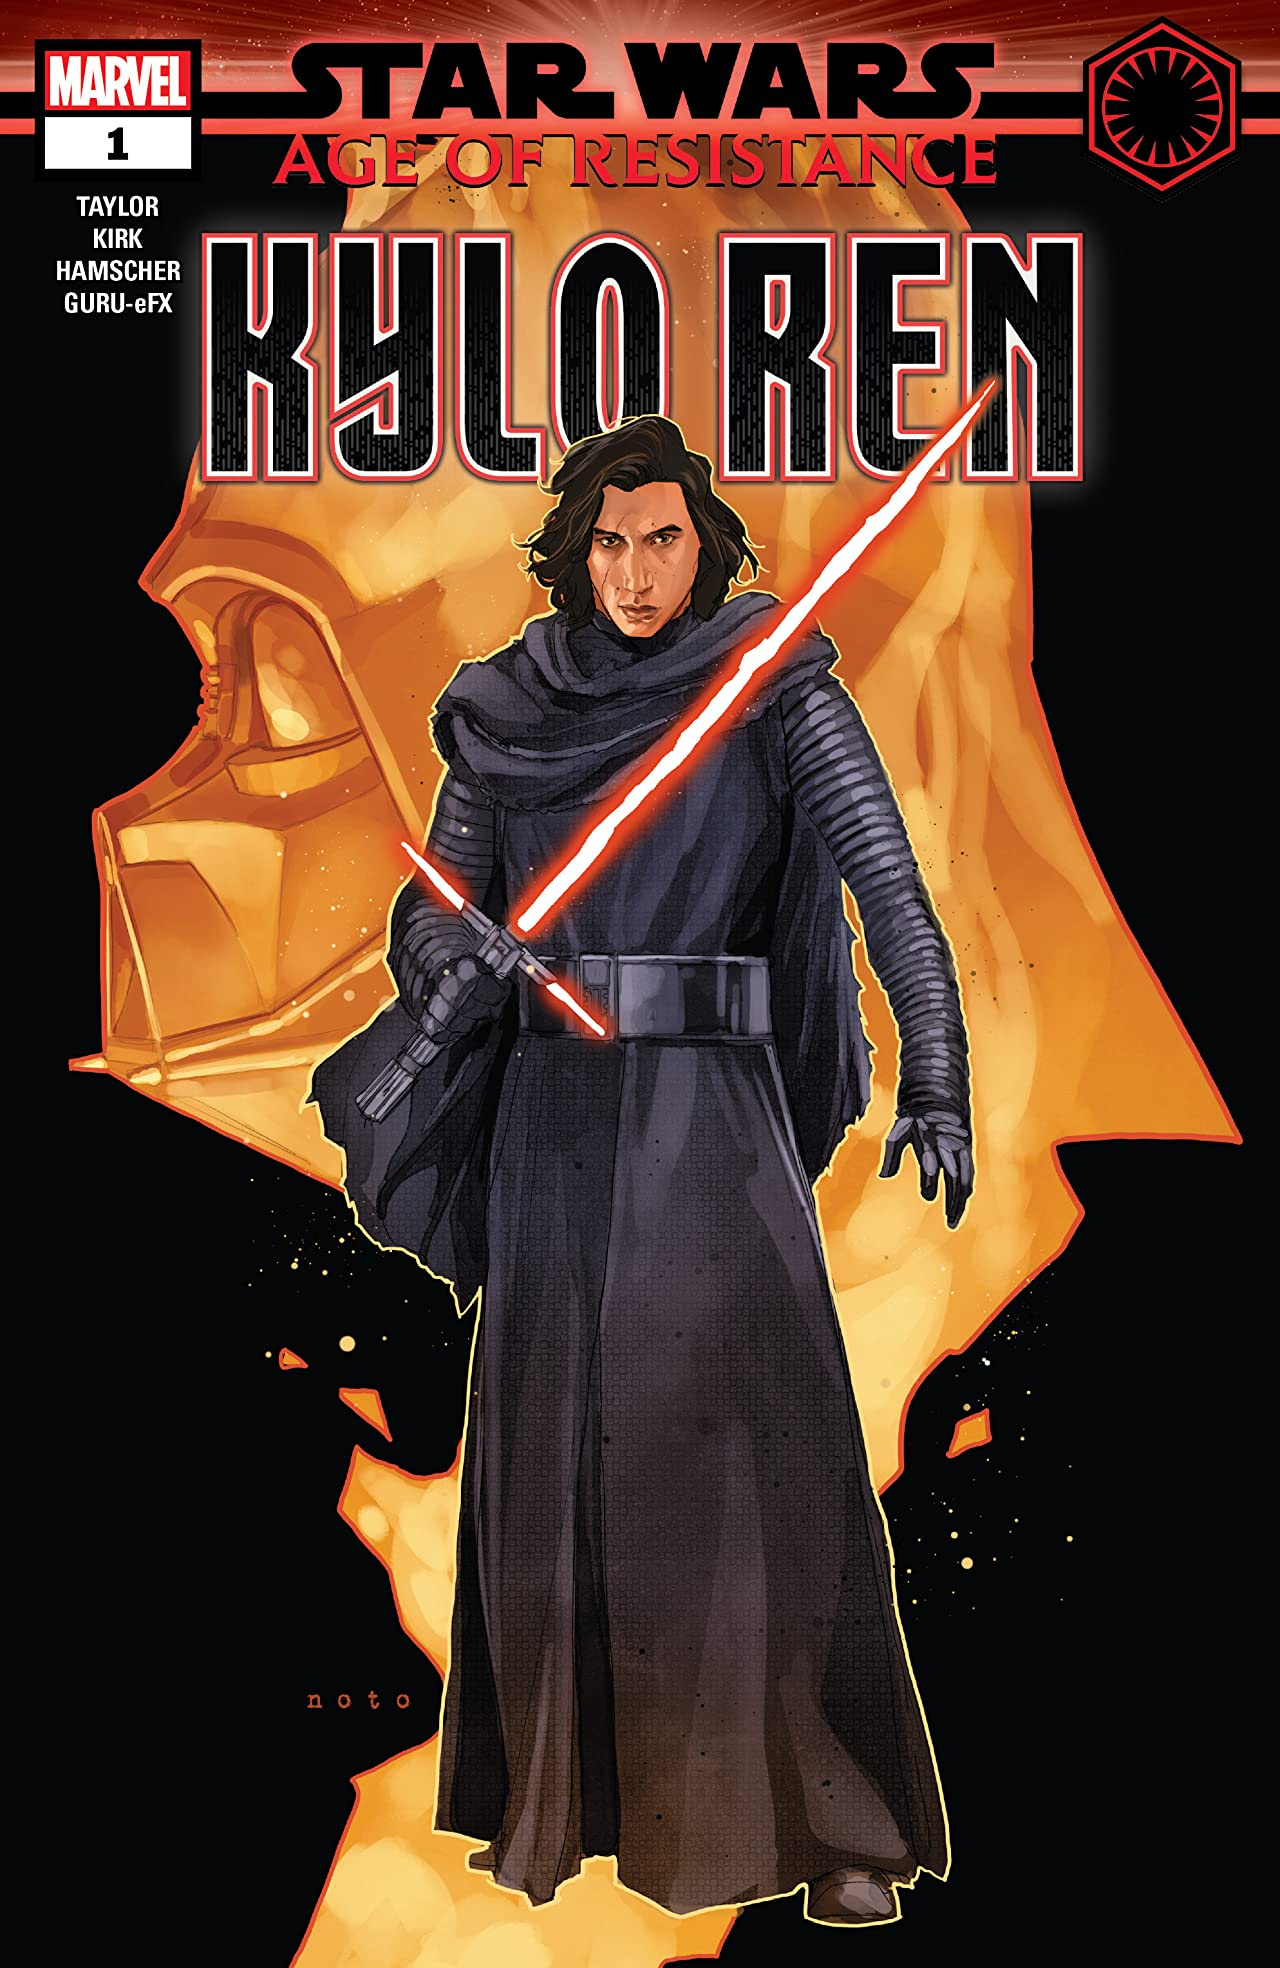 Star Wars: Age Of Resistance - Kylo Ren (2019) #1